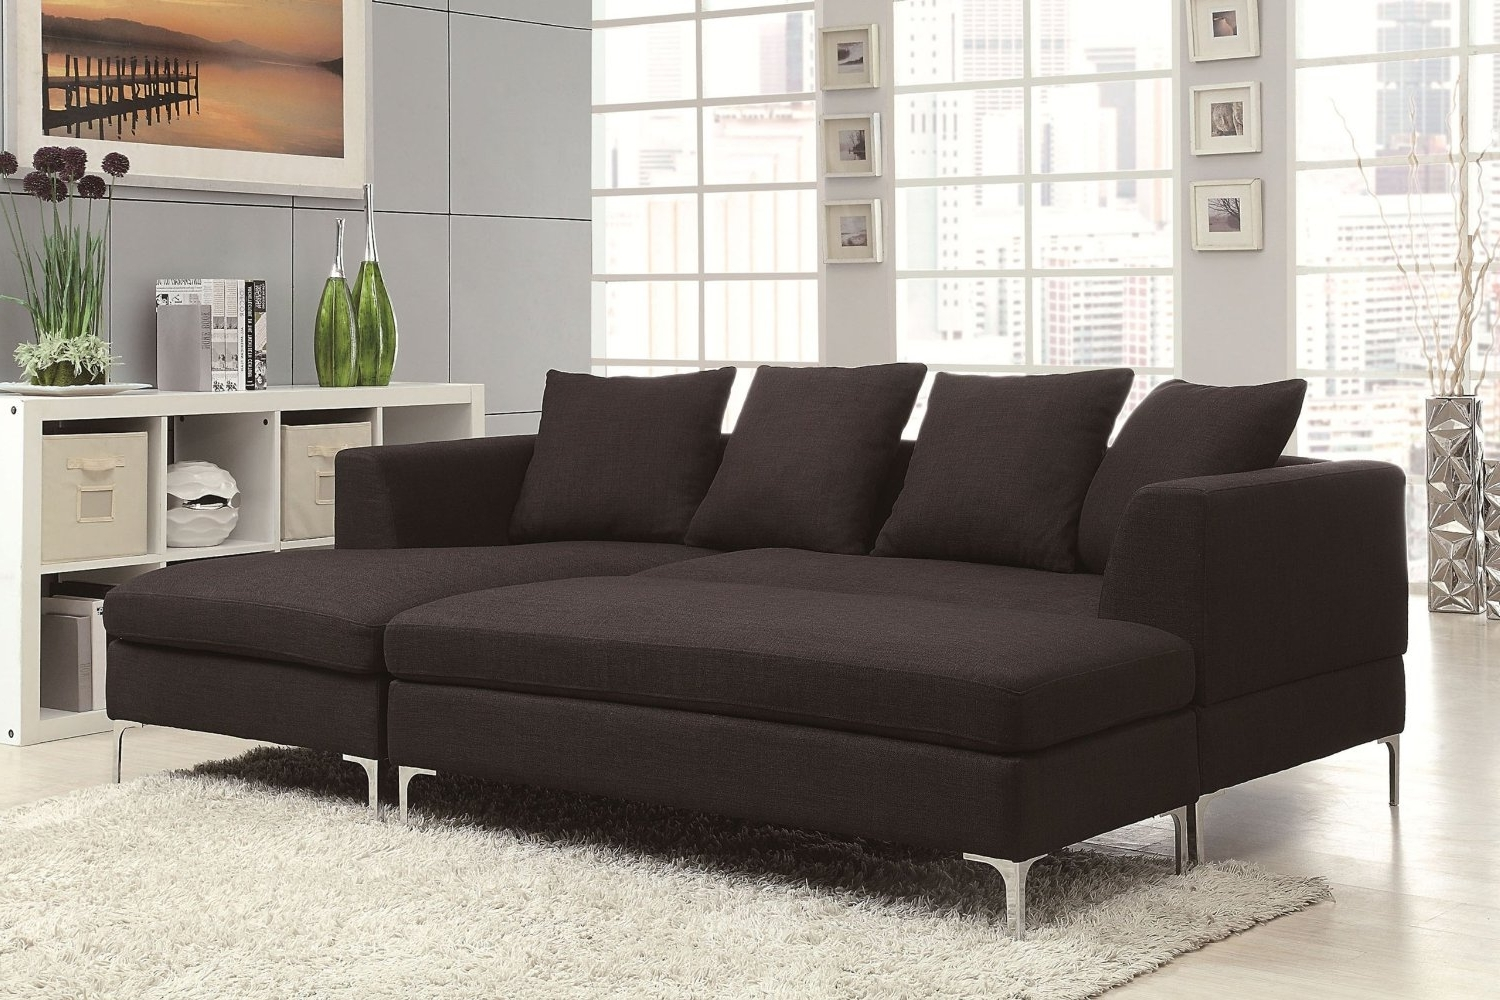 Famous Sectional Chaise Sofa – Home And Textiles Pertaining To Leather Sectionals With Chaise Lounge (View 11 of 15)